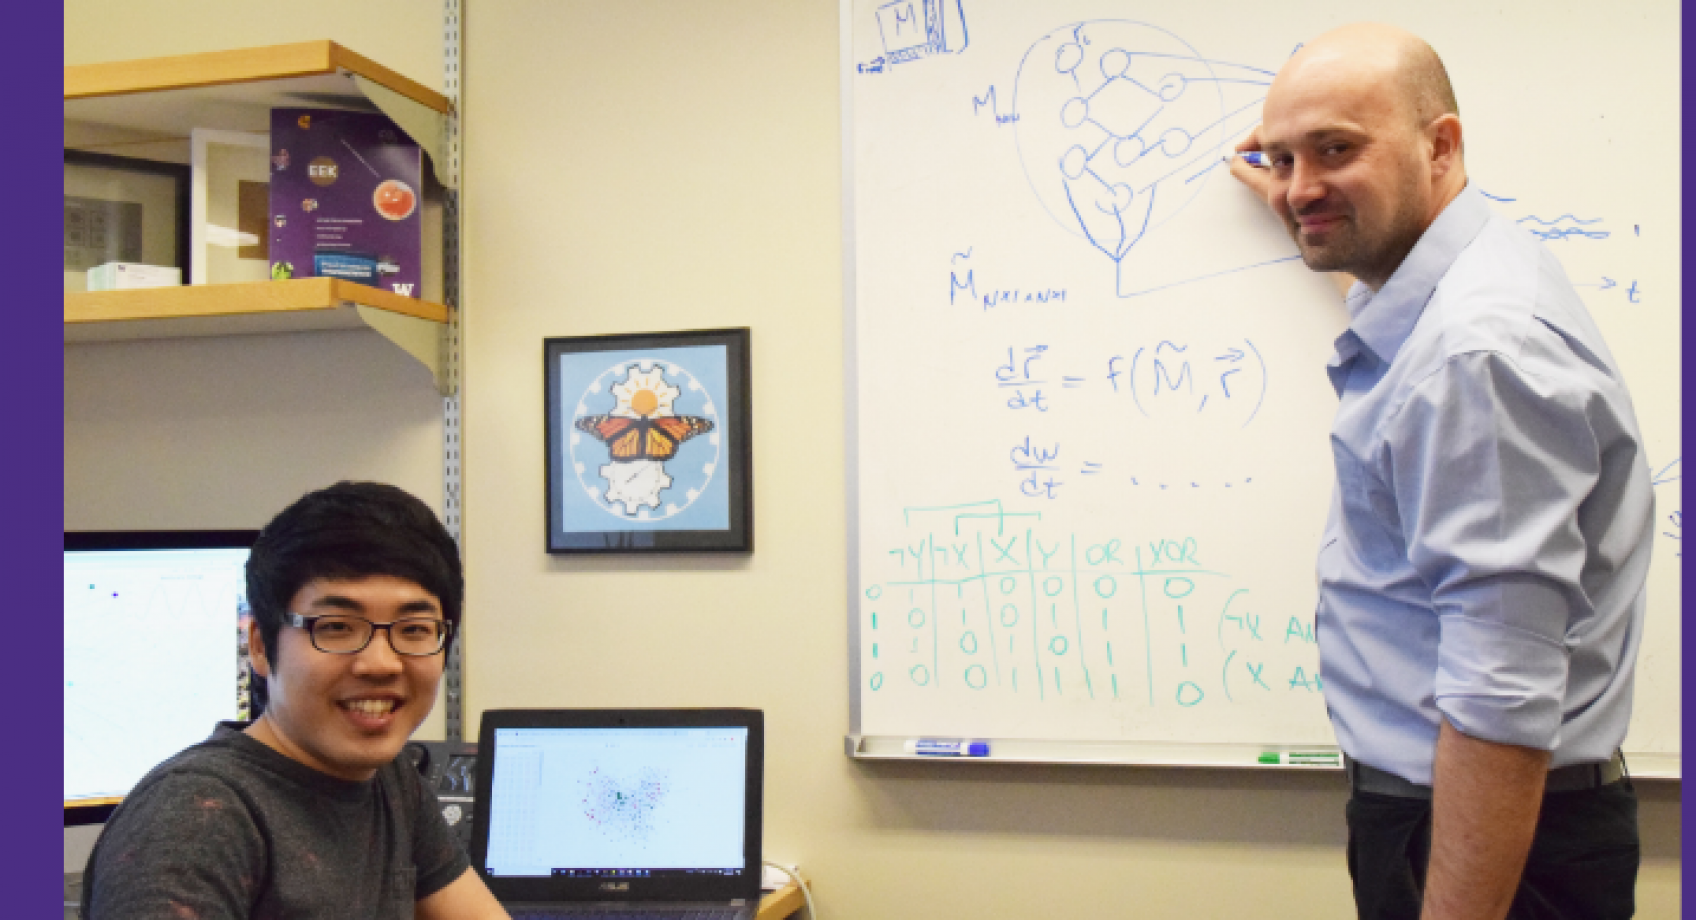 UW researchers create an interactive simulation of a nervous system Banner